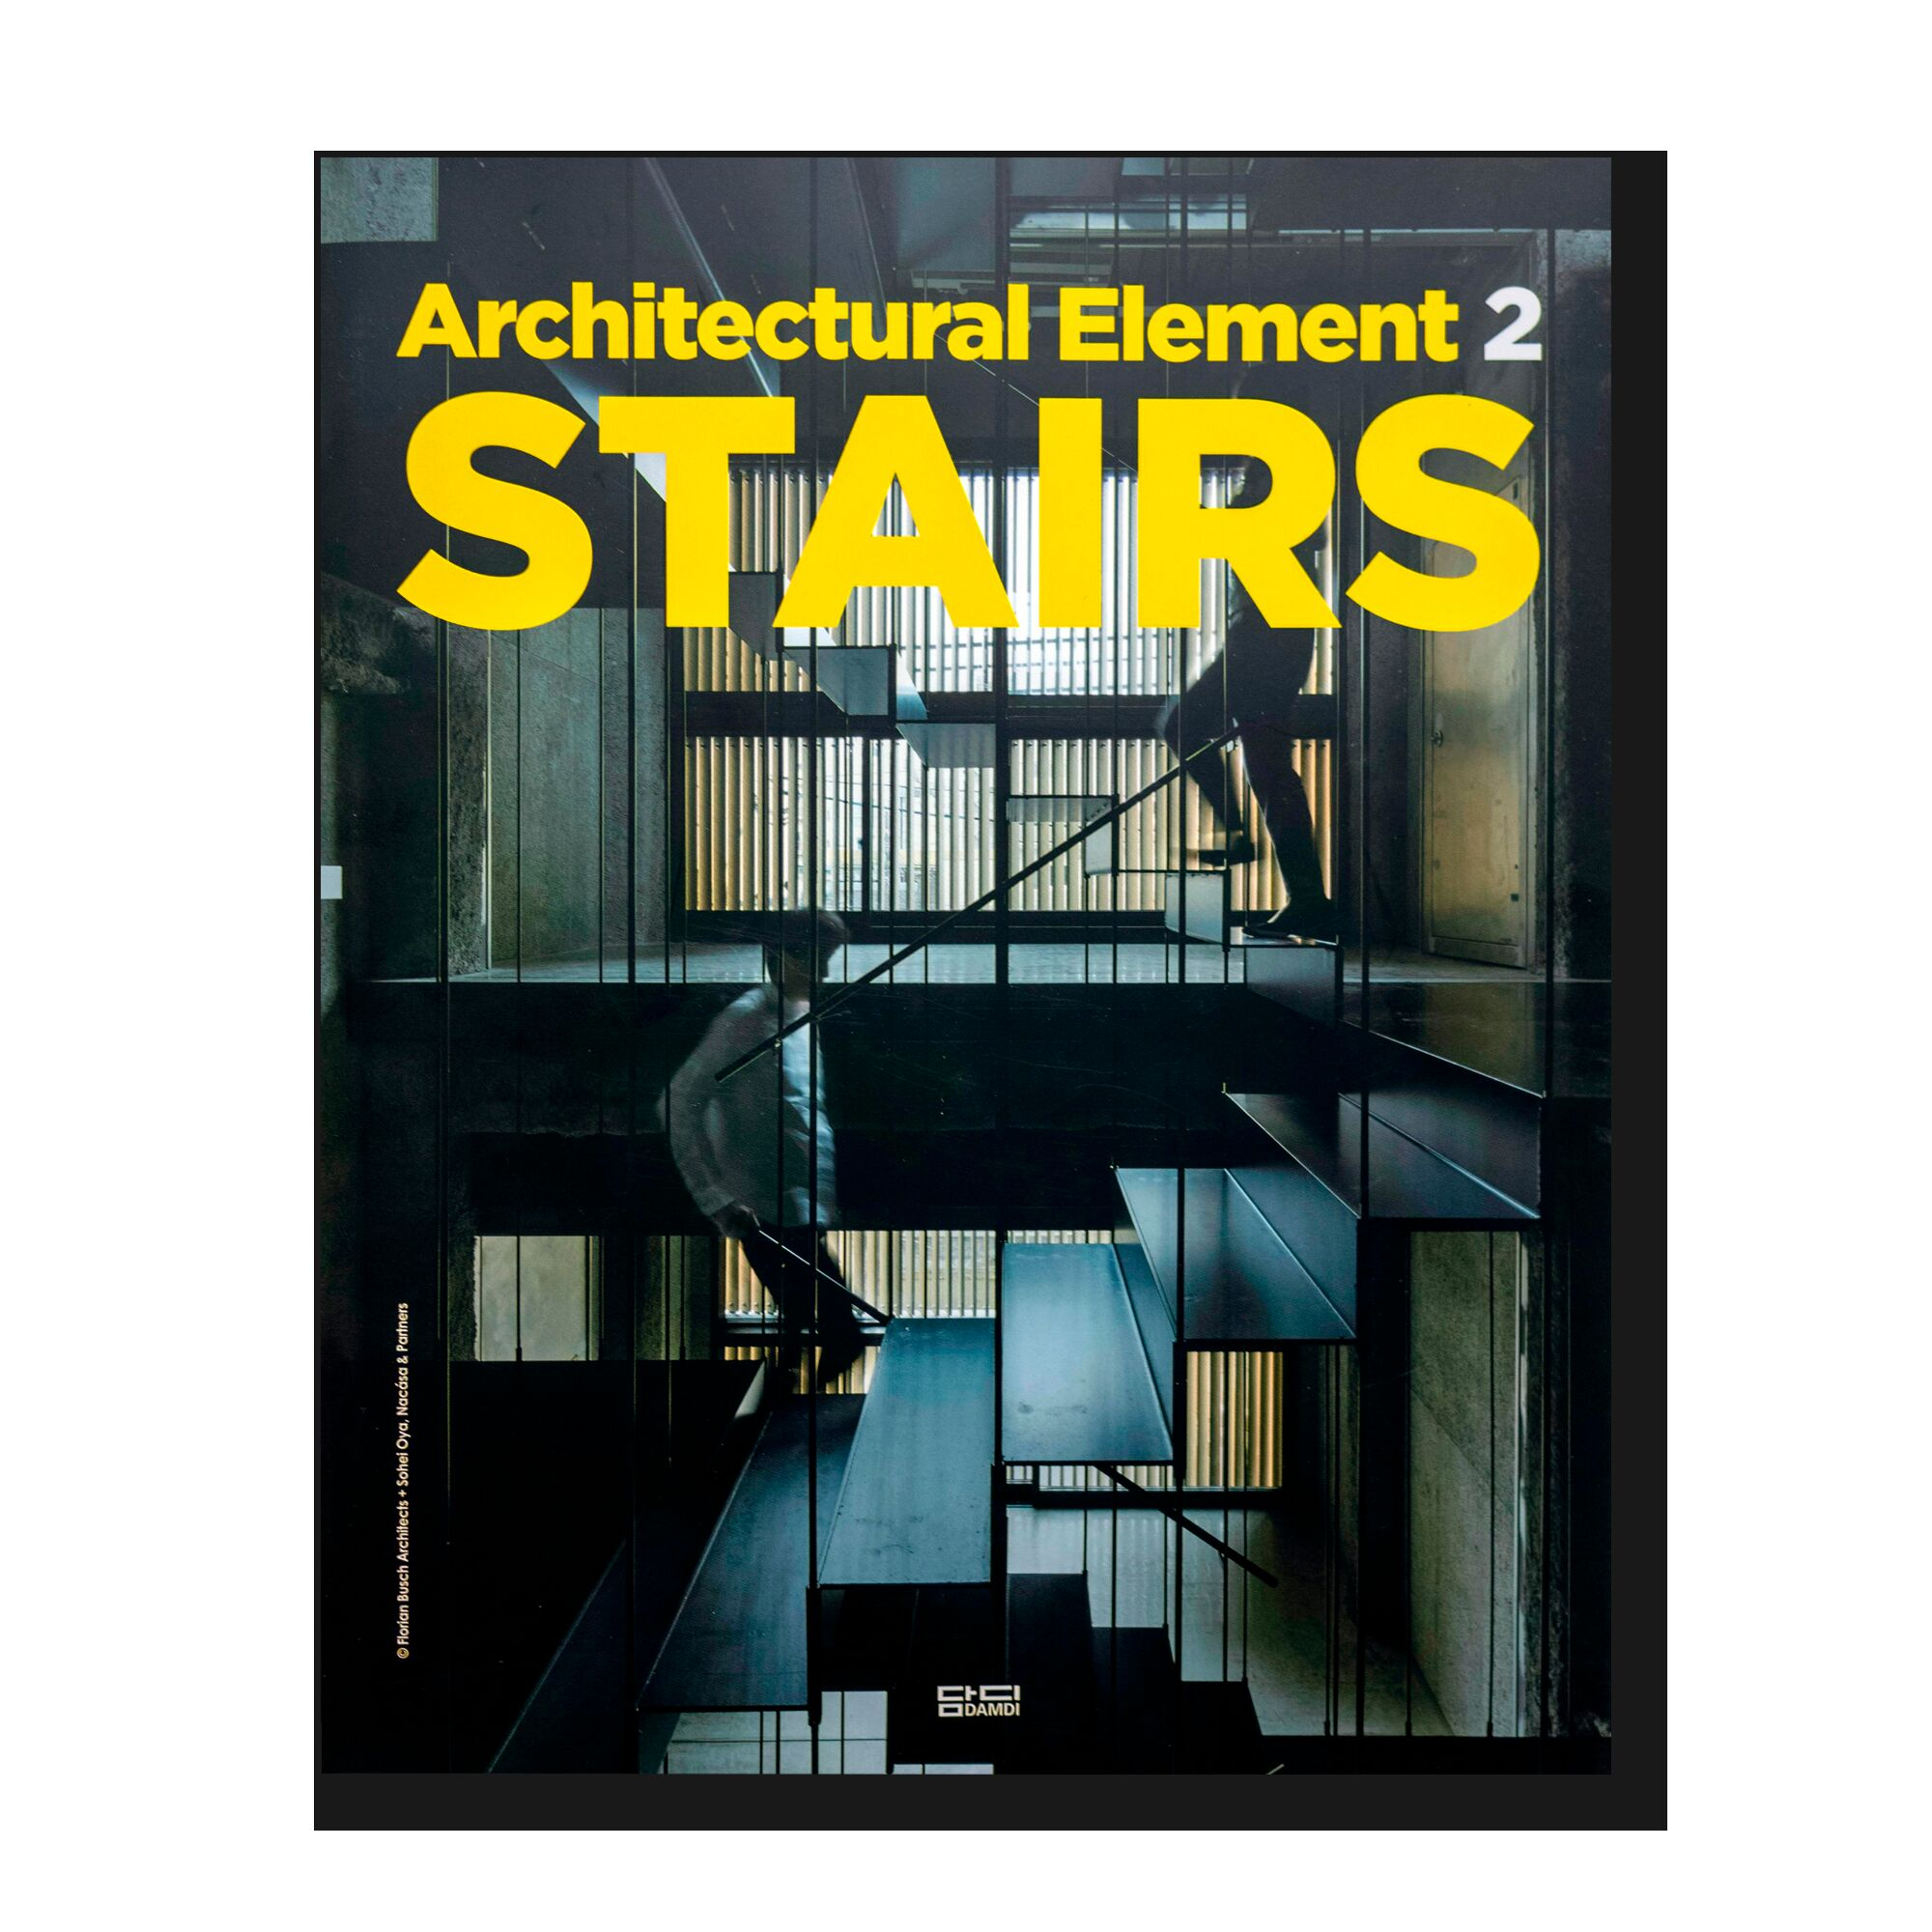 Architectural Element 2: Stairs